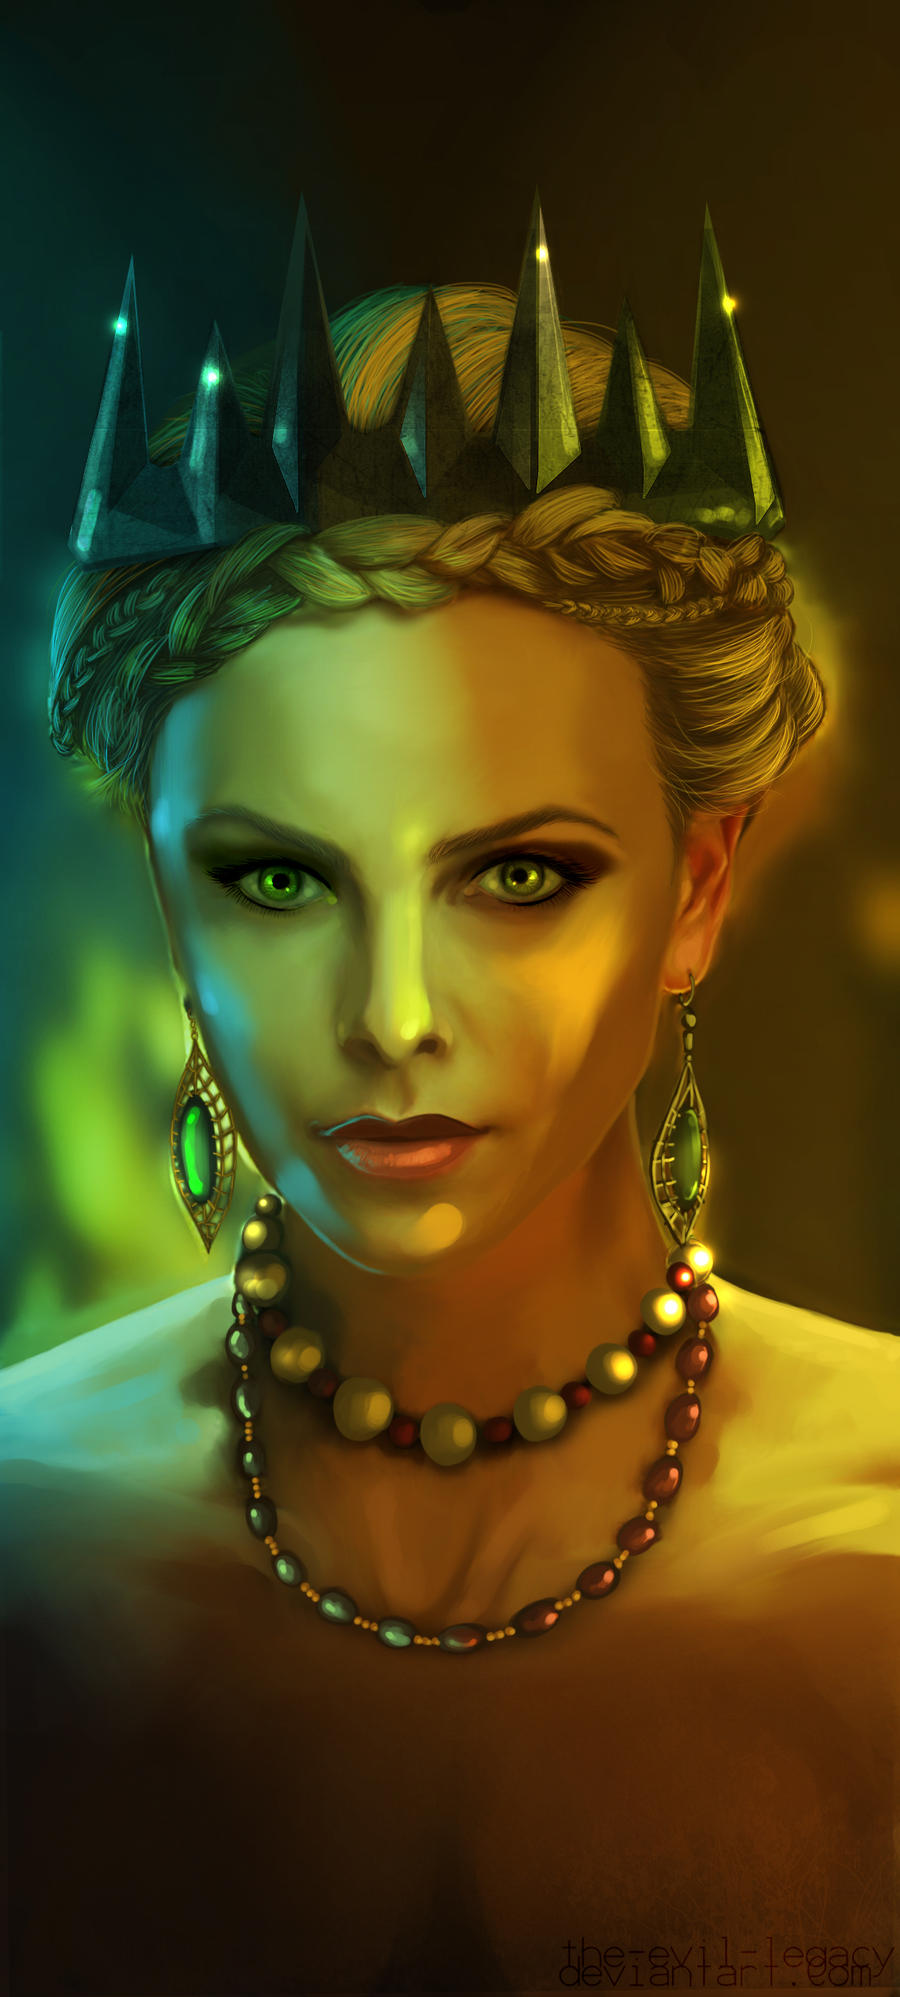 SW - Ravenna, the queen (reloaded) by the-evil-legacy